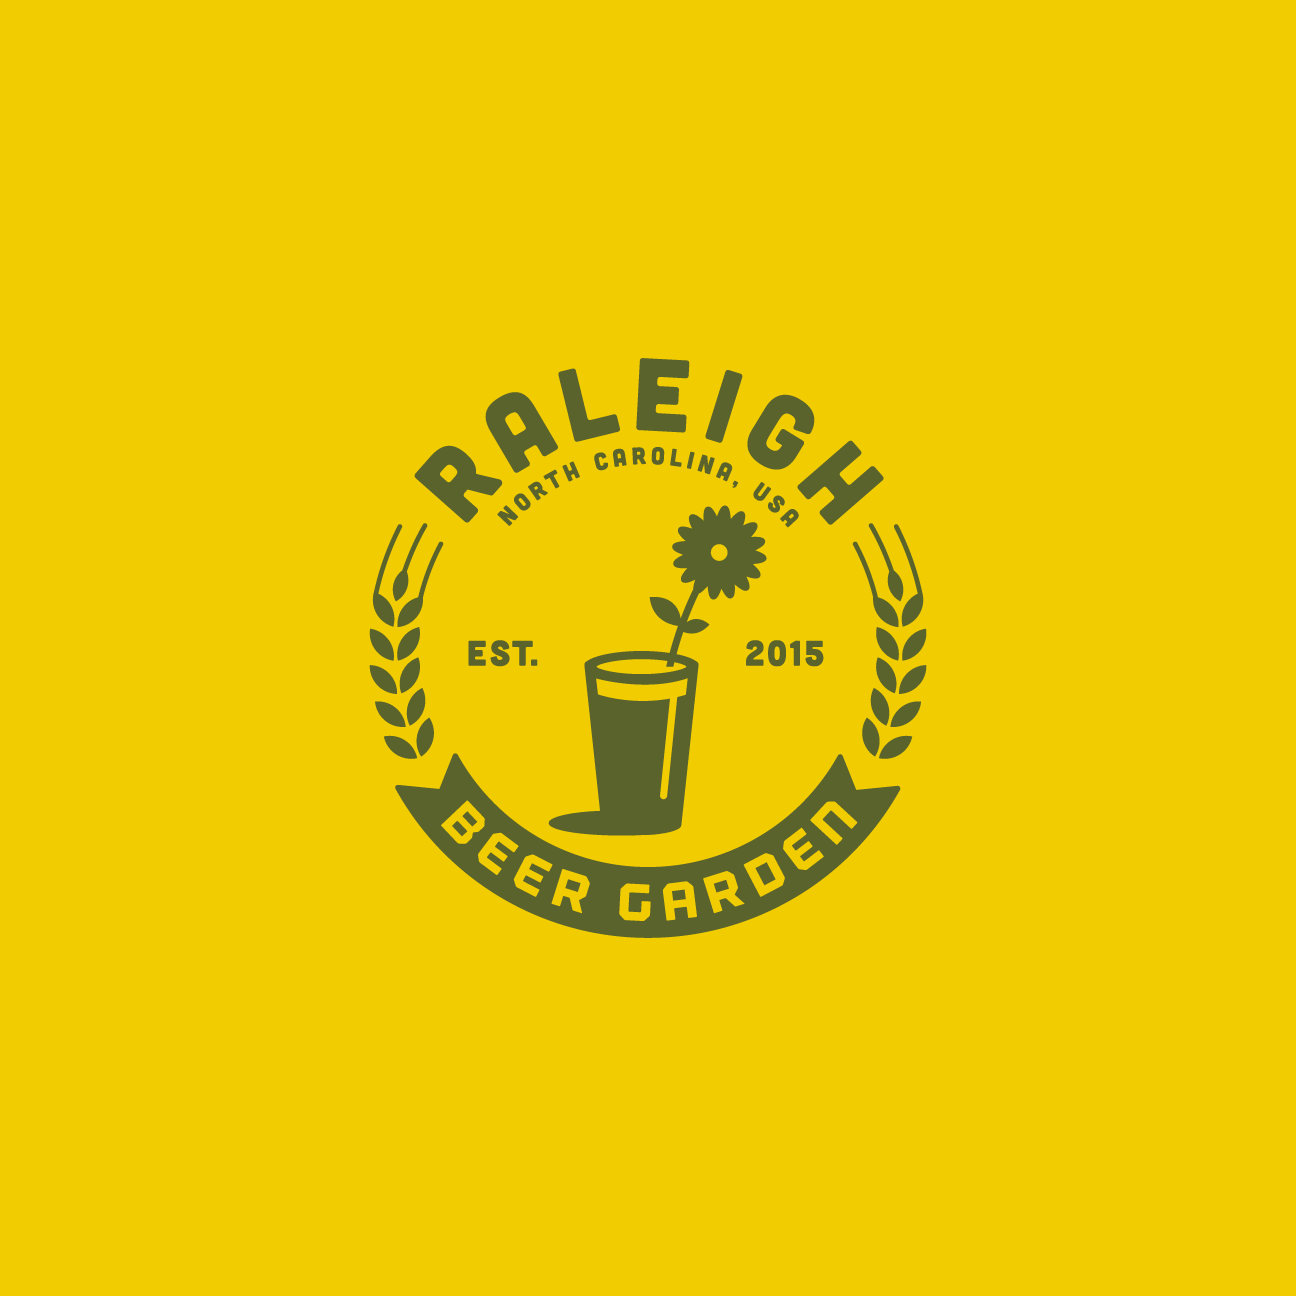 Raleigh Beer Garden Logo